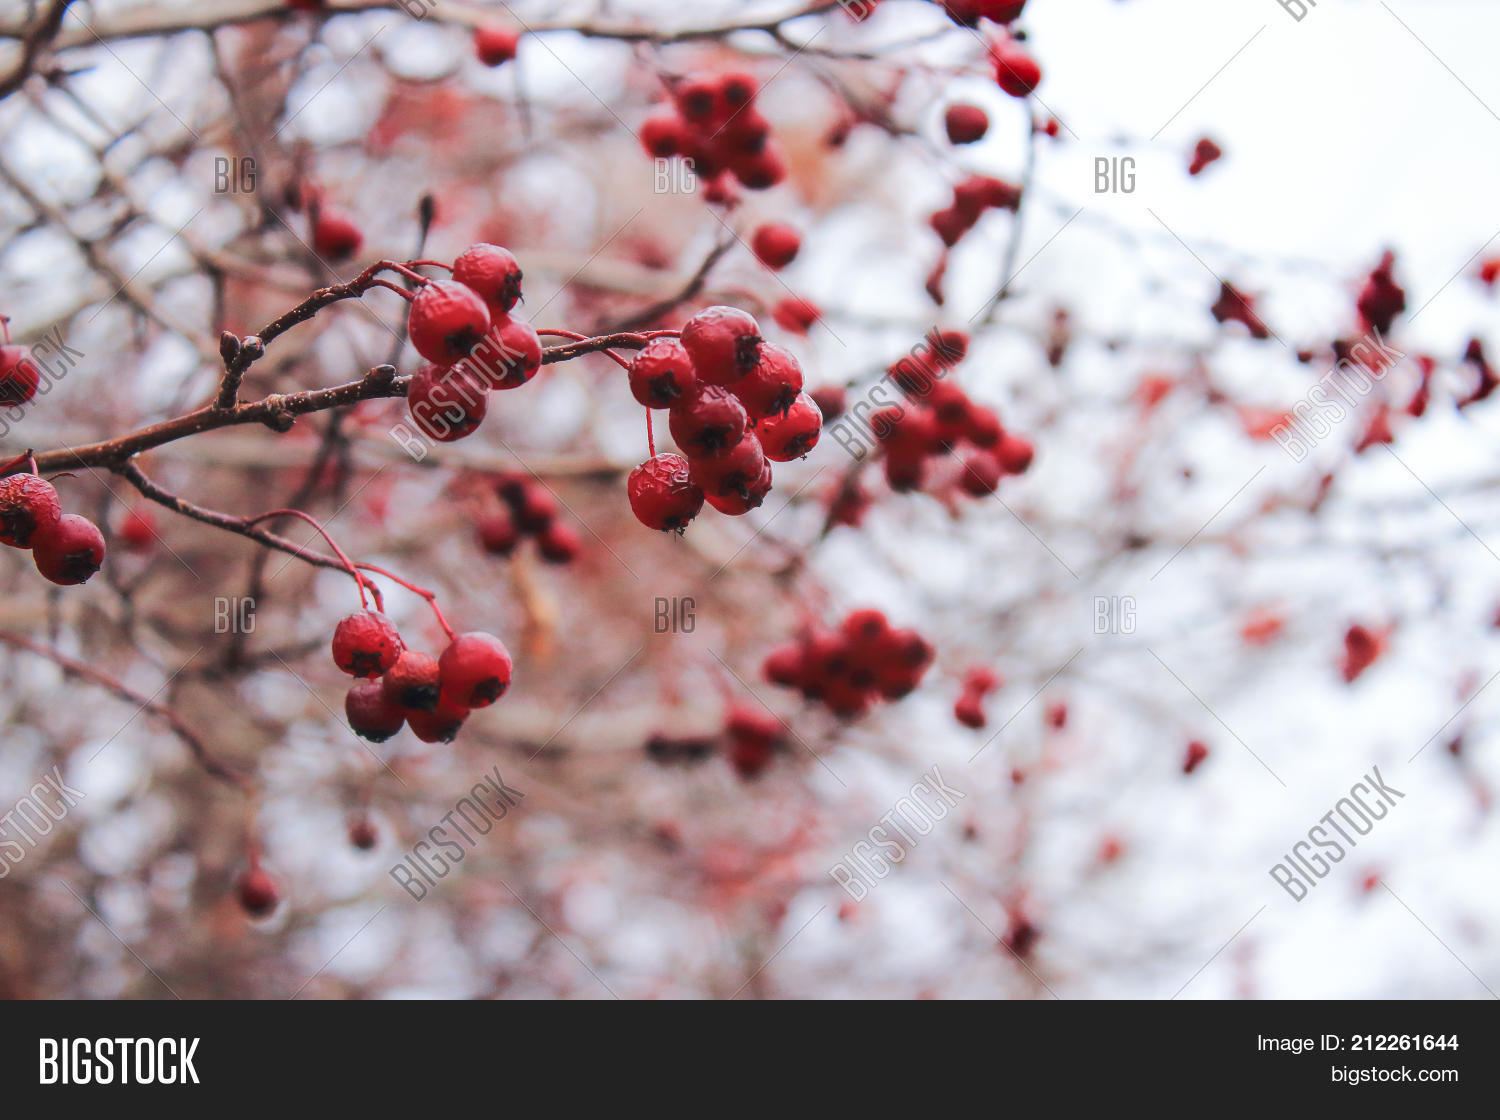 Hawthorn Berries Image Photo Free Trial Bigstock